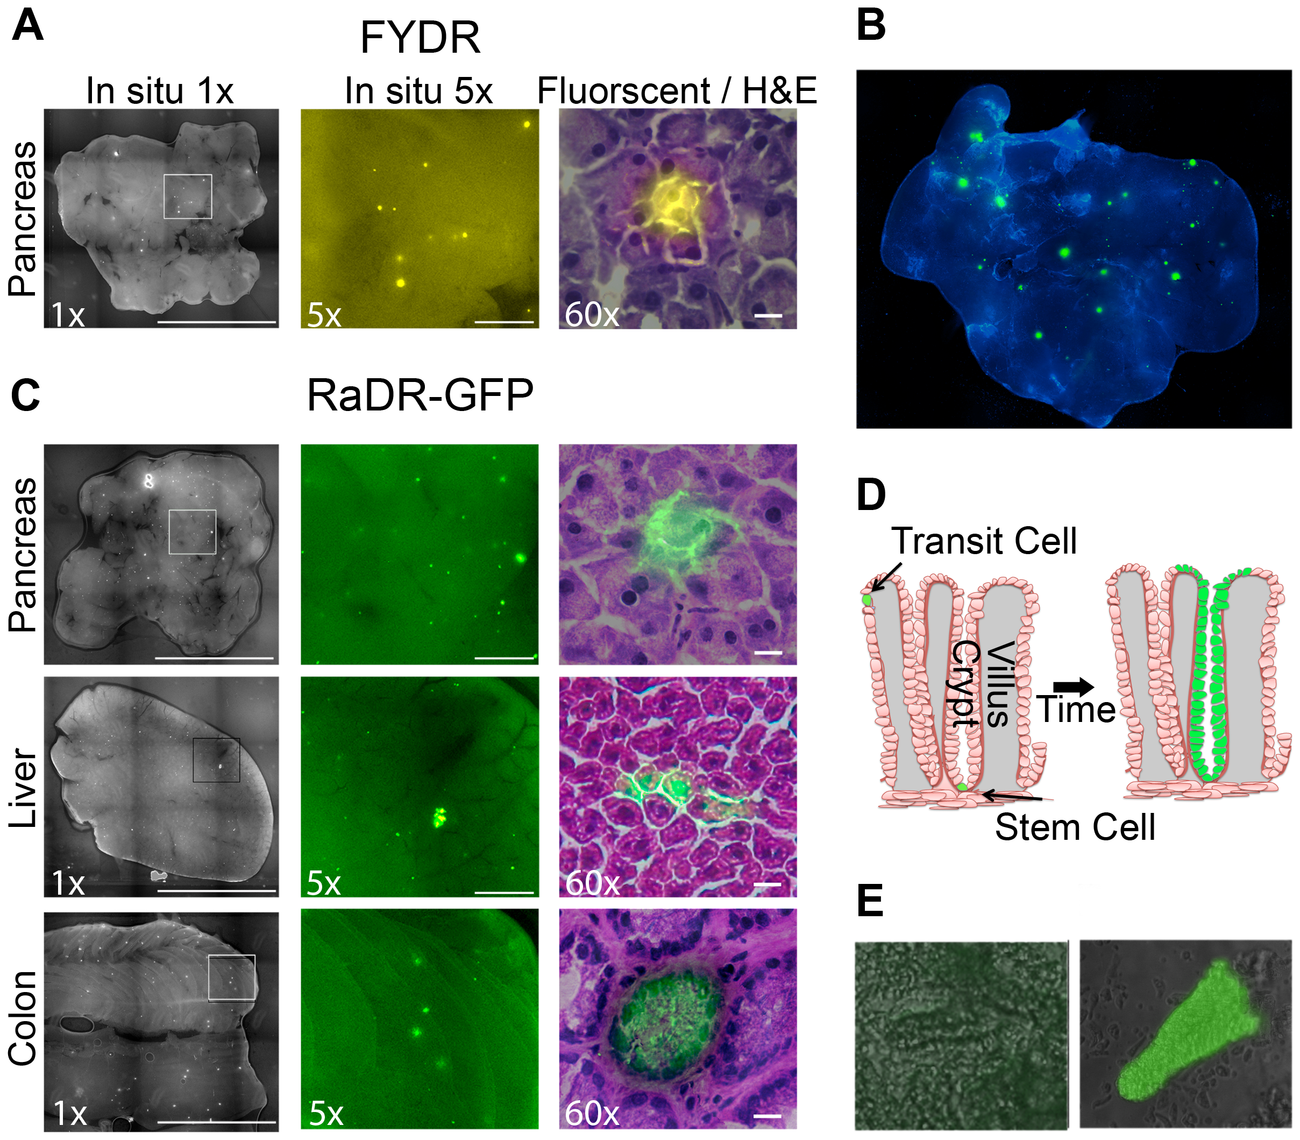 Fluorescence detection of recombinant cells within intact tissues of FYDR and RaDR-GFP mice and identification of the underlying cell types.